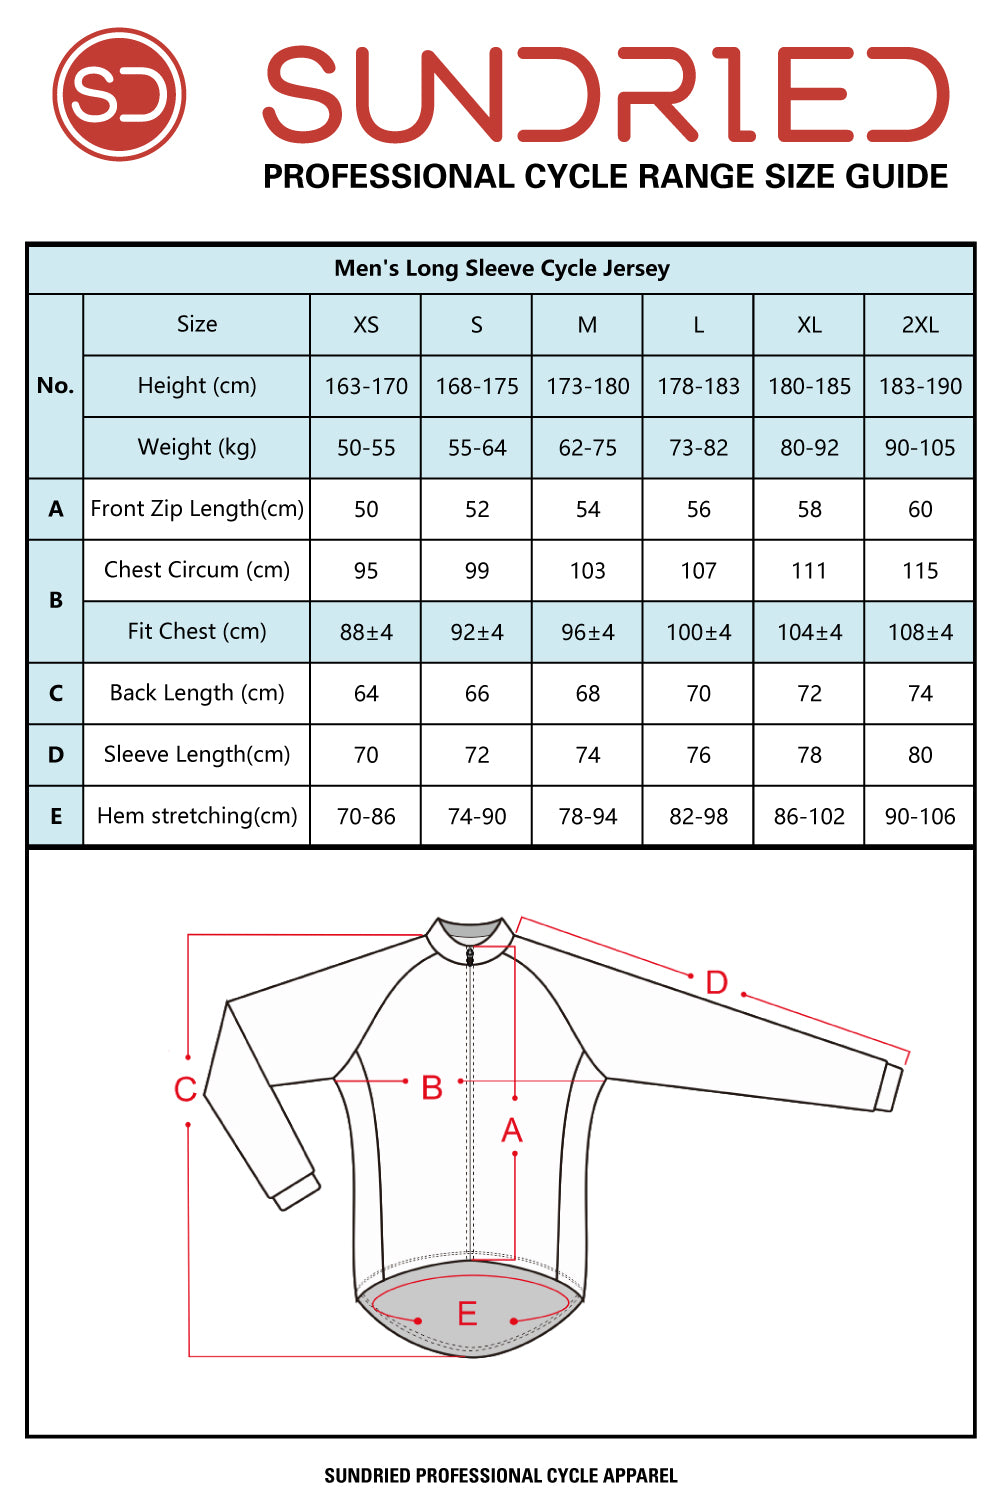 Sundried Cadence Men's Long Sleeve Jersey